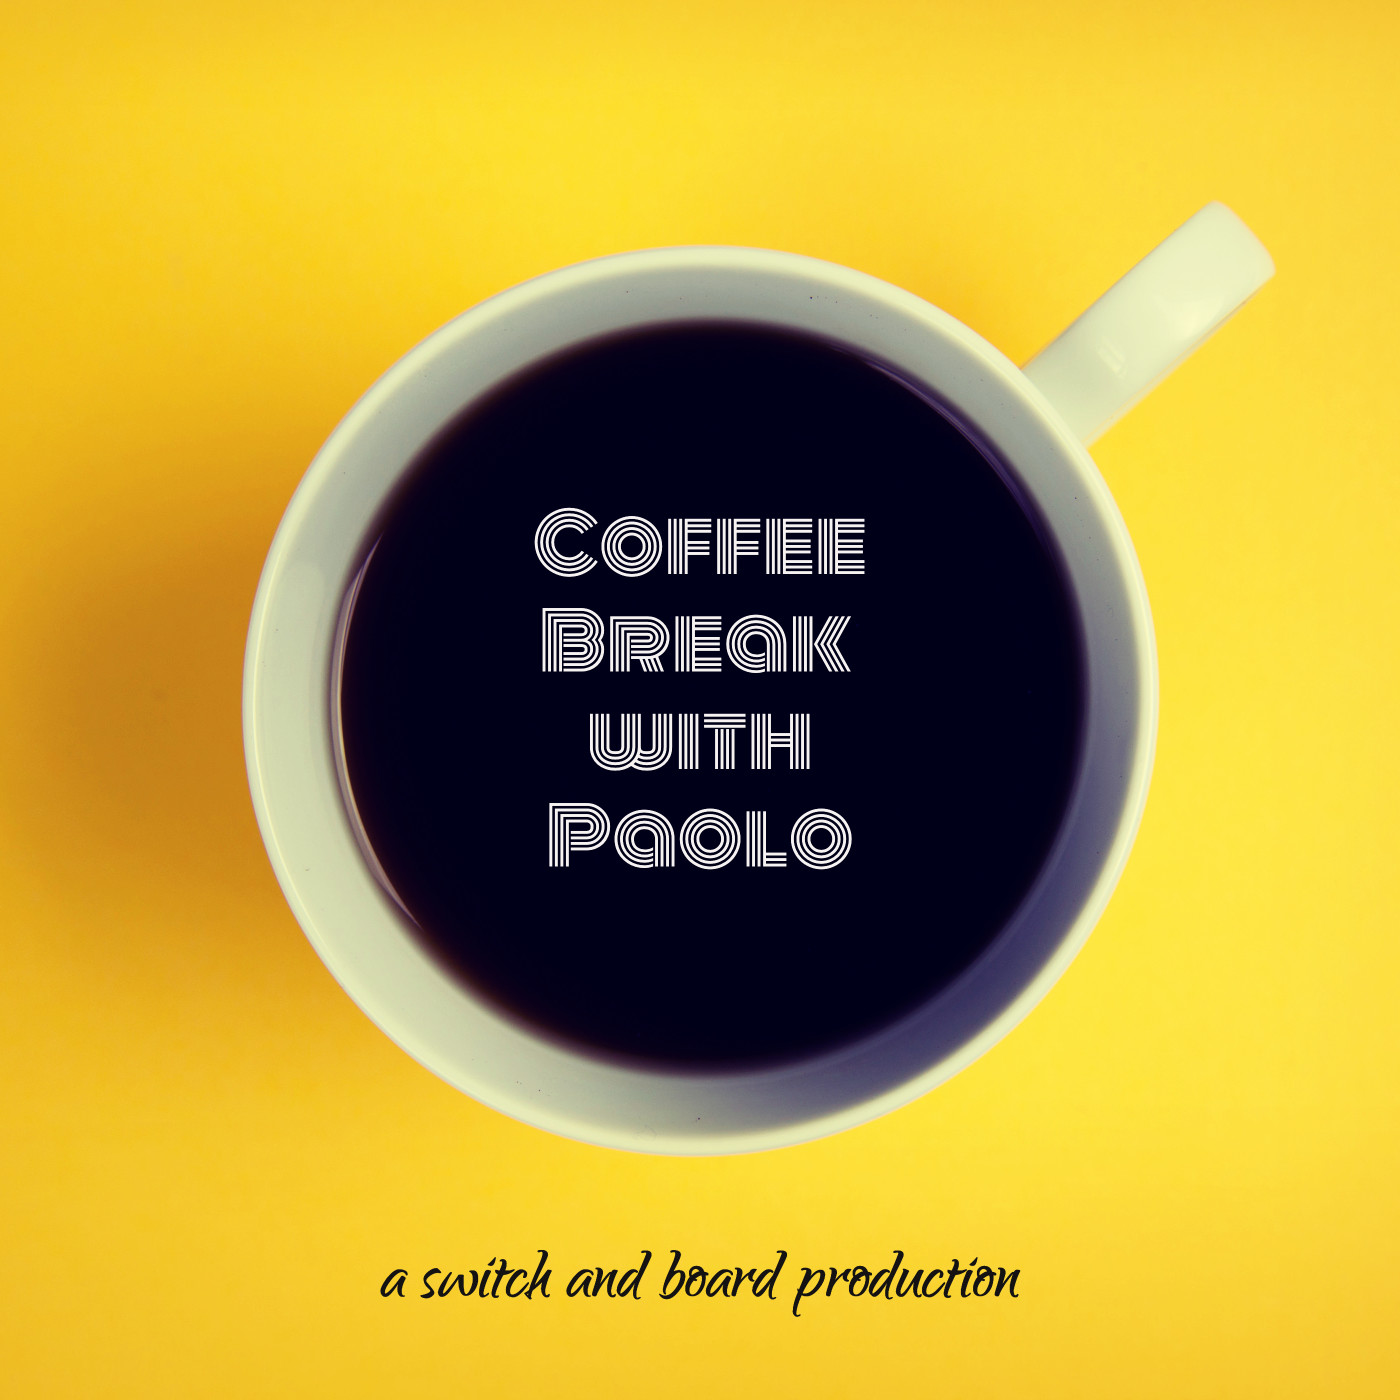 Artwork for Bay Atlantic University presents: Coffee Break with Paolo - The National Debt